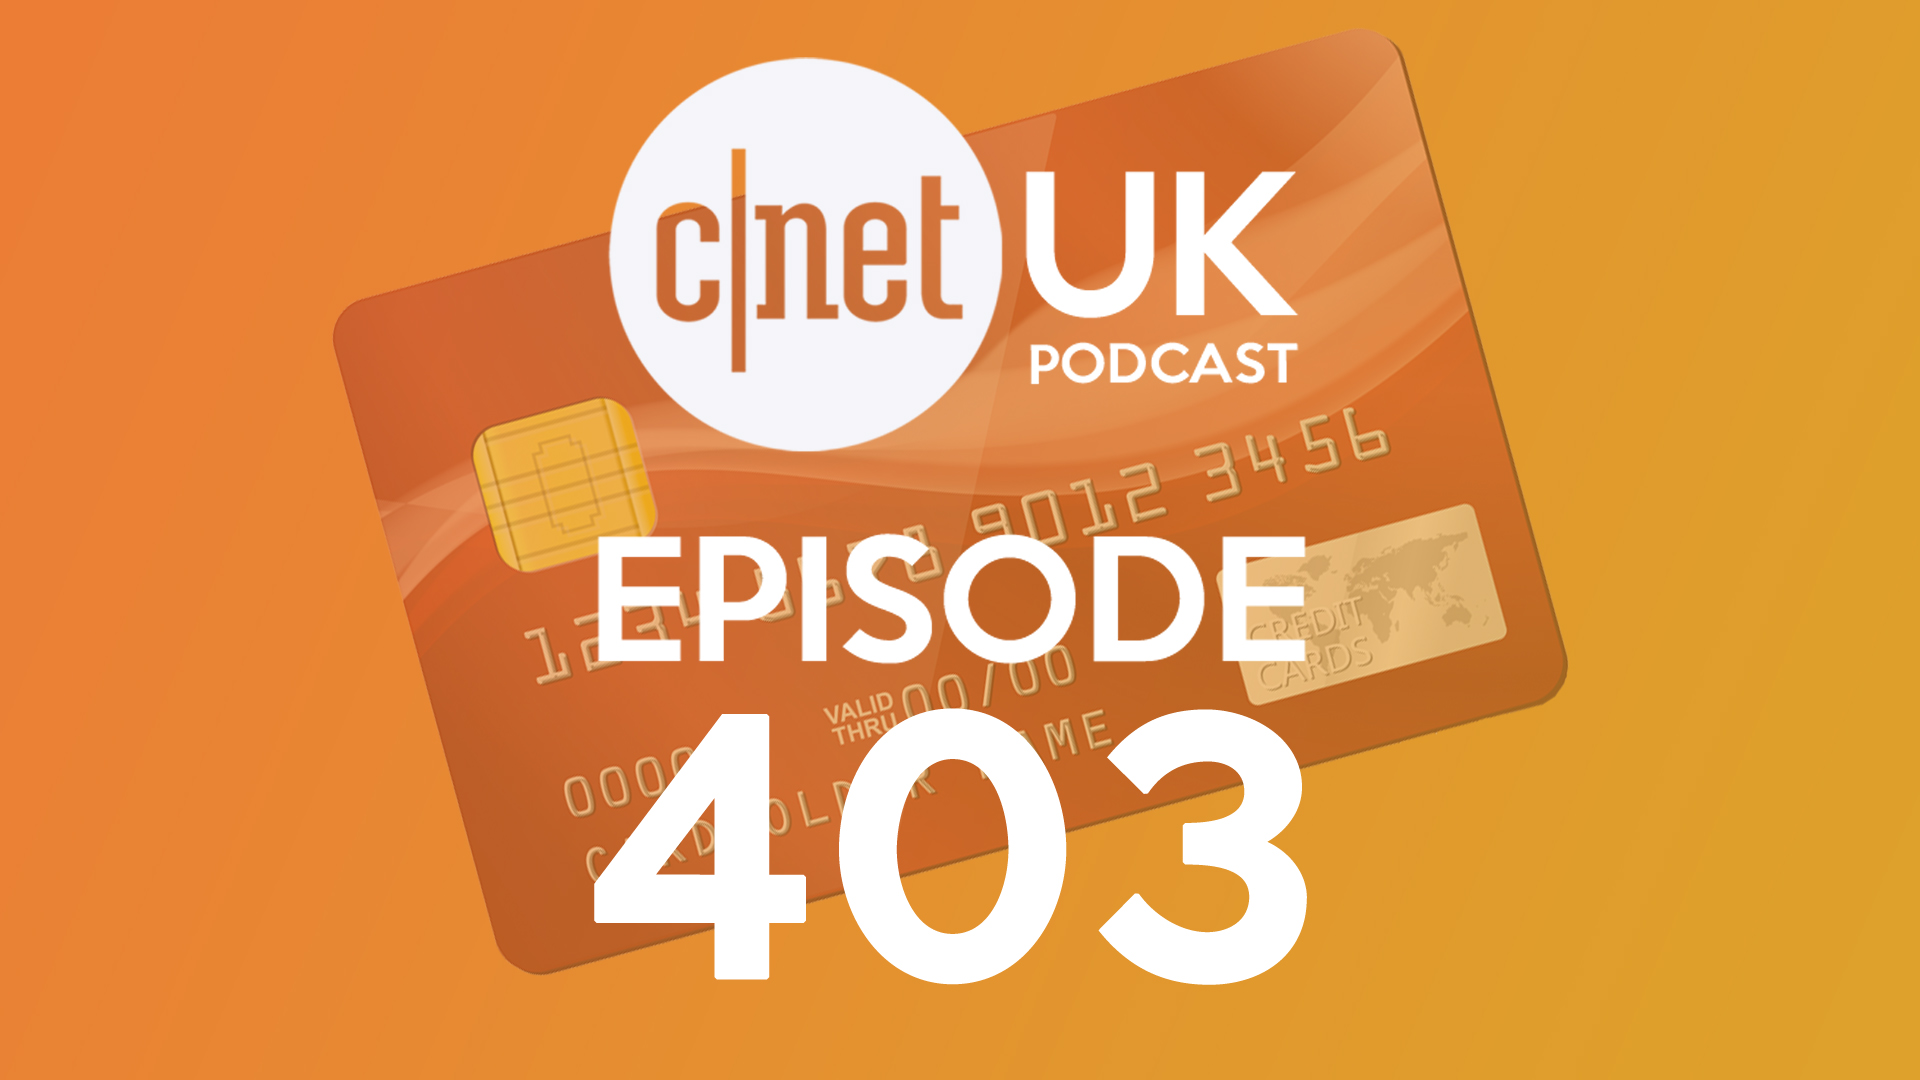 Video: iPhone 6 is here, but do we need Apple Pay? asks CNET UK podcast 403